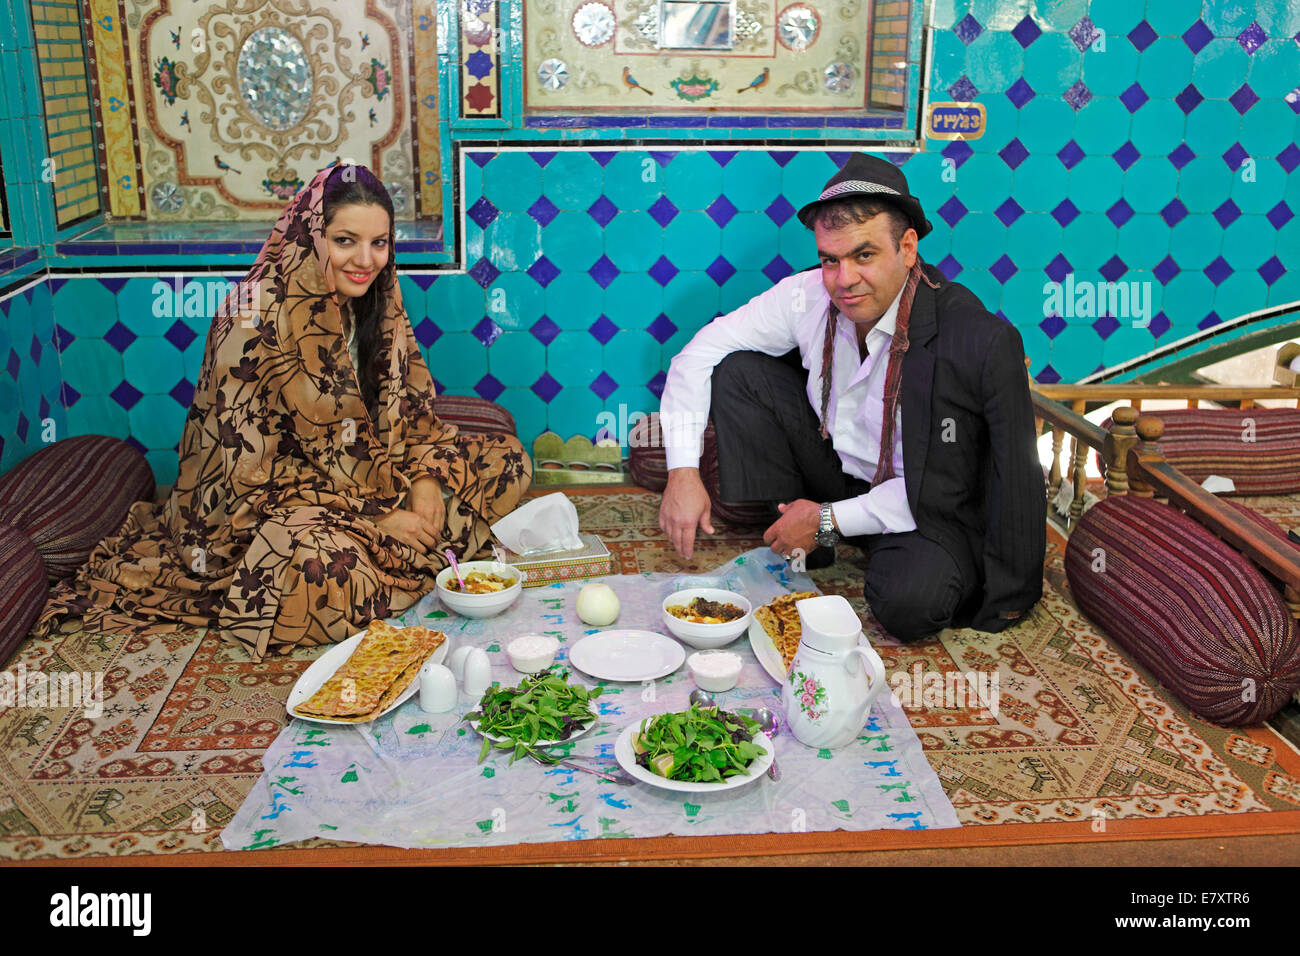 Iranian wedding couple having lunch in a traditional restaurant, Bazaar, Isfahan, Isfahan Province, Persia, Iran - Stock Image